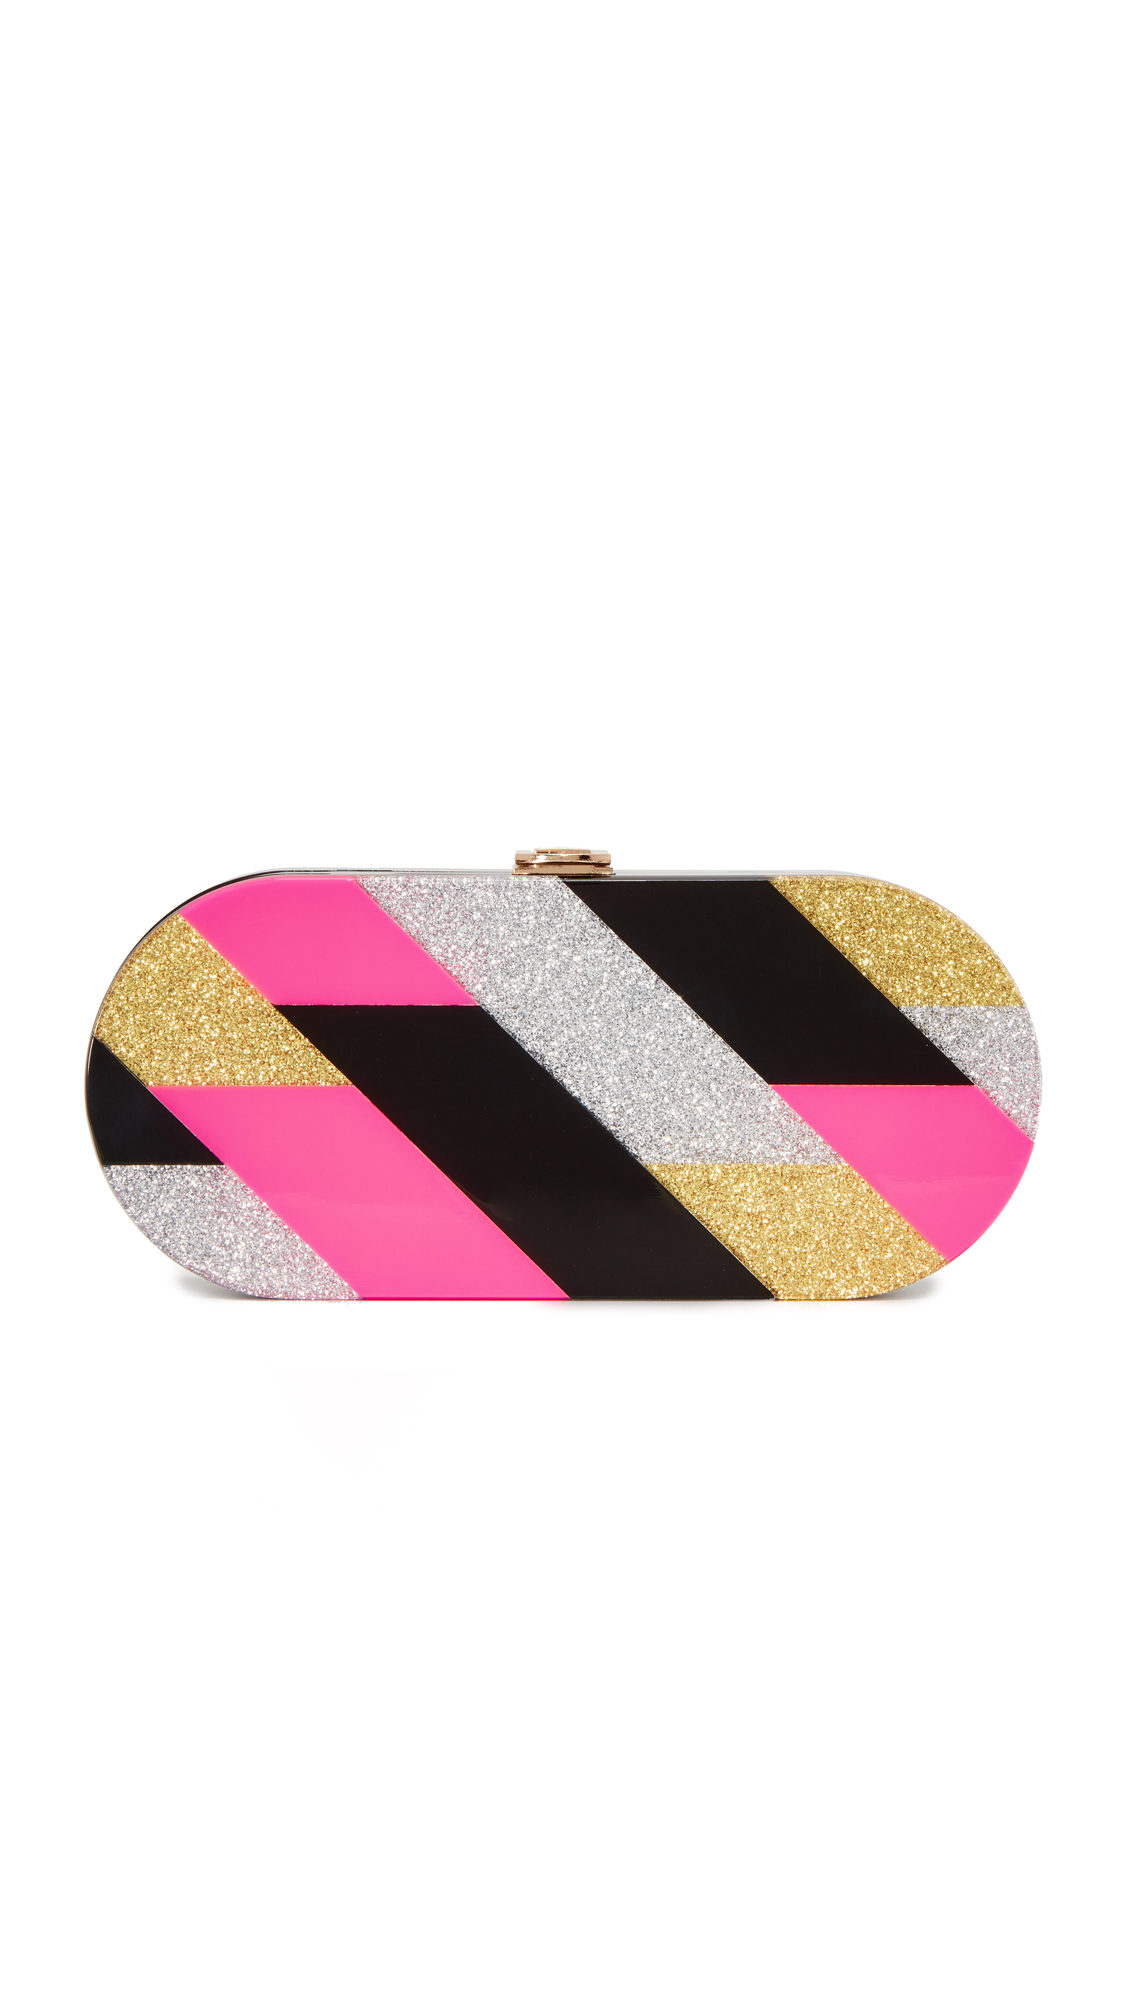 Milly Pink Geo Oval Clutch - Multi